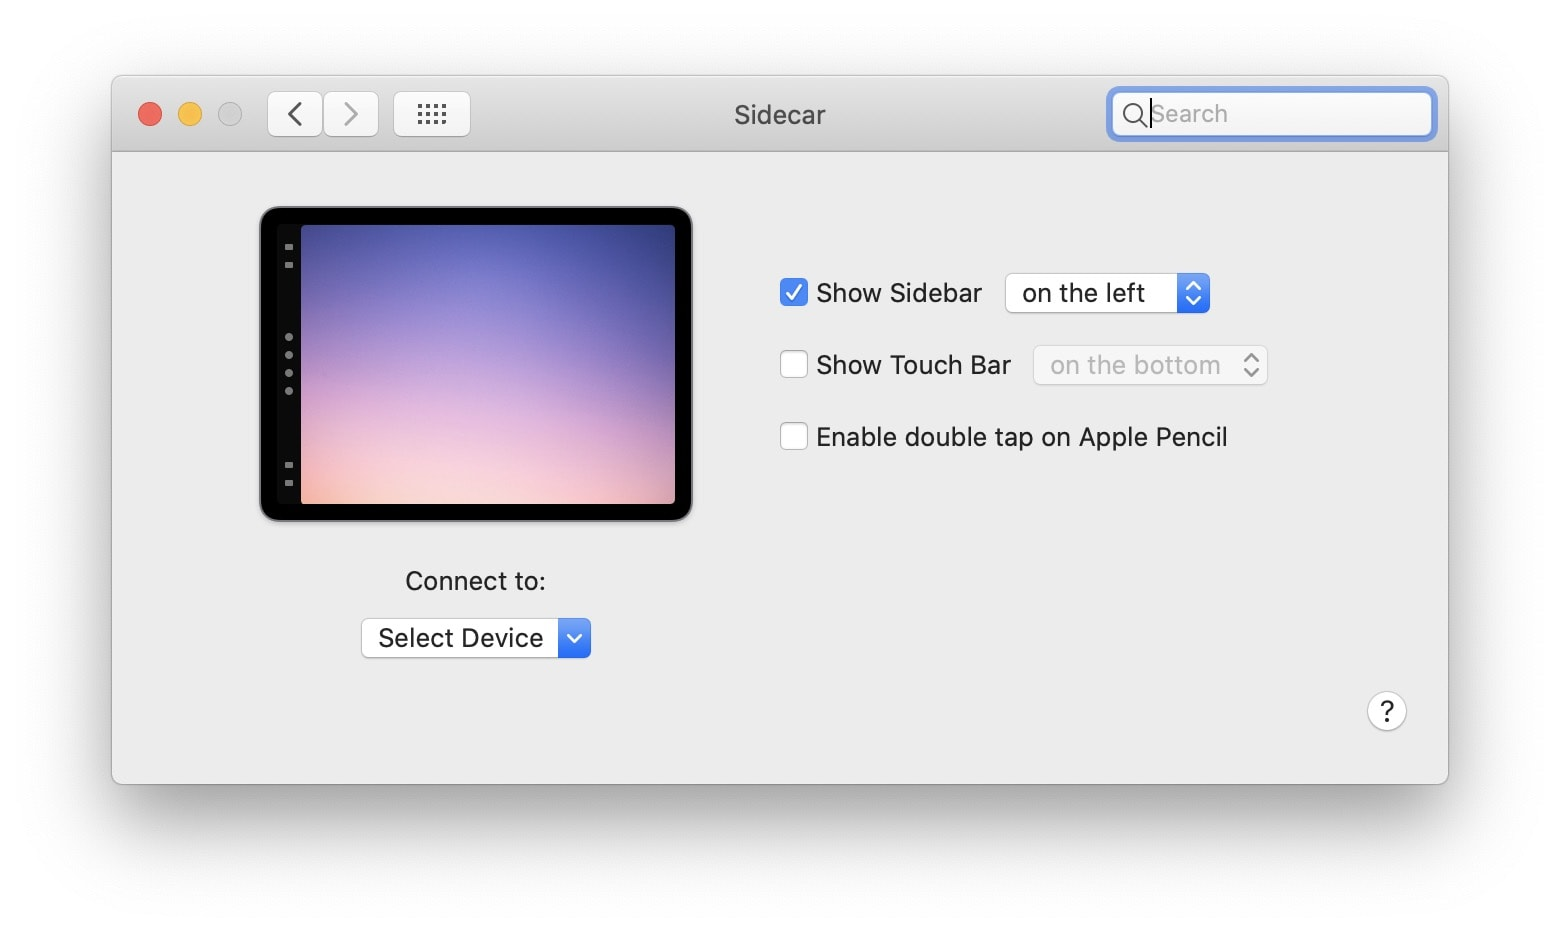 The Mac's Sidecar preferences.